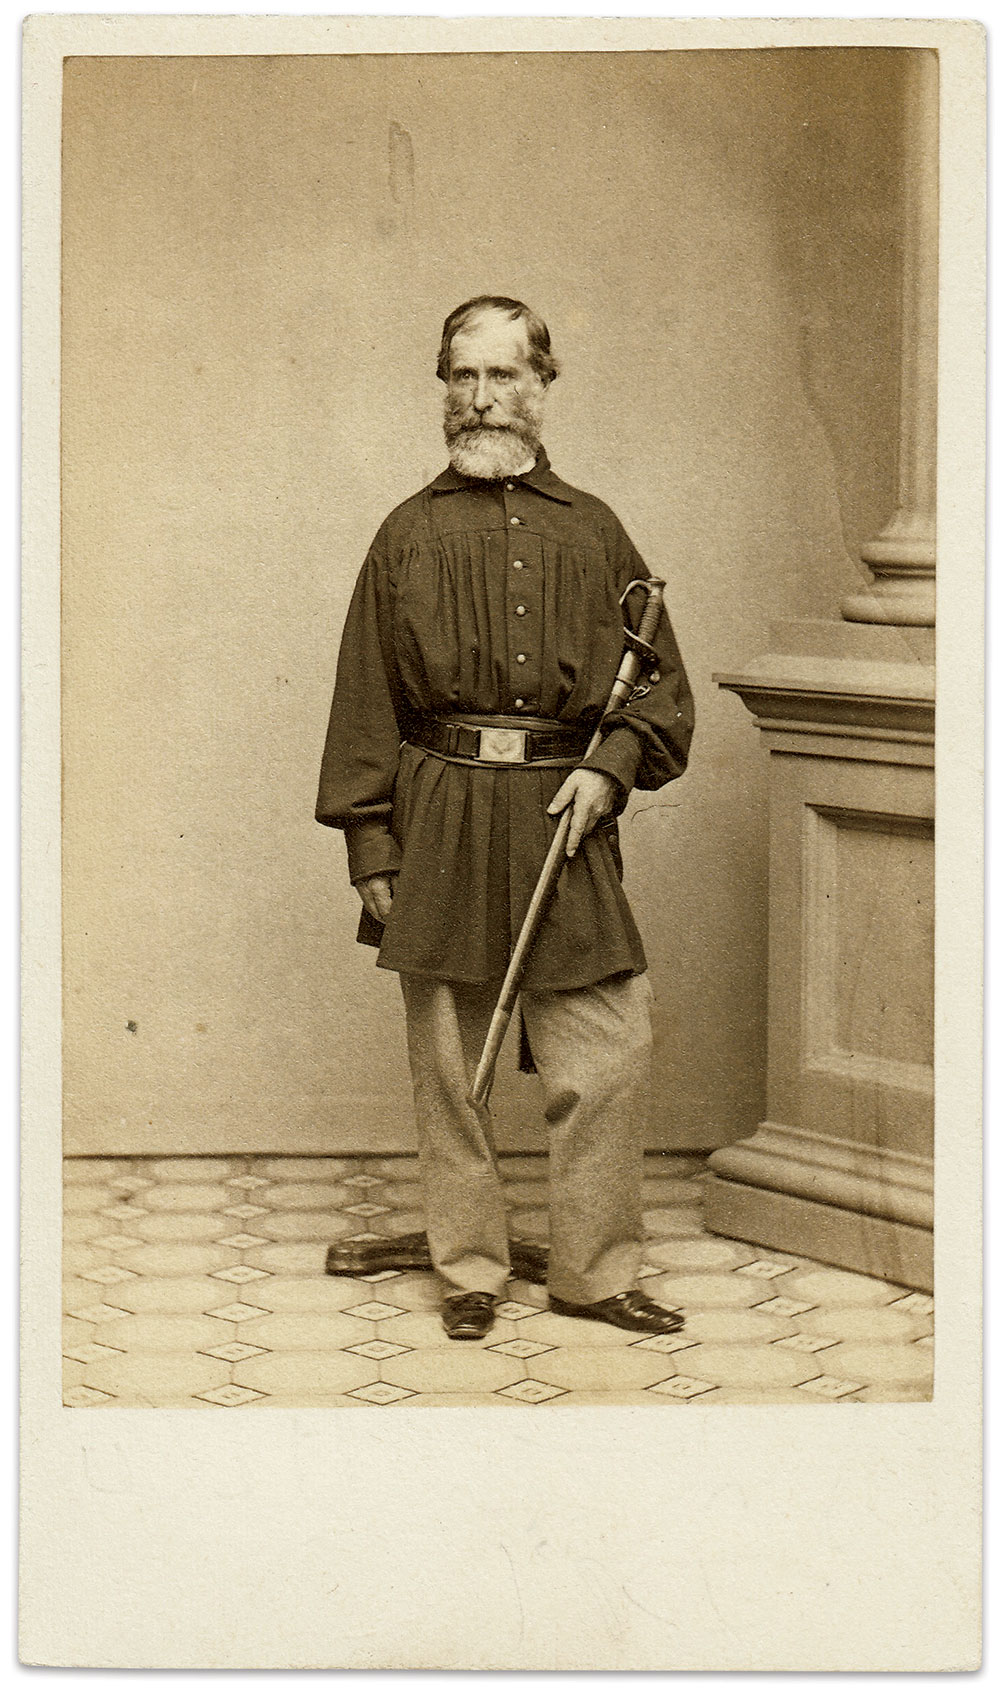 Carte de visite by Bundy & Rowell of Providence, R.I. Scott Valentine Collection.